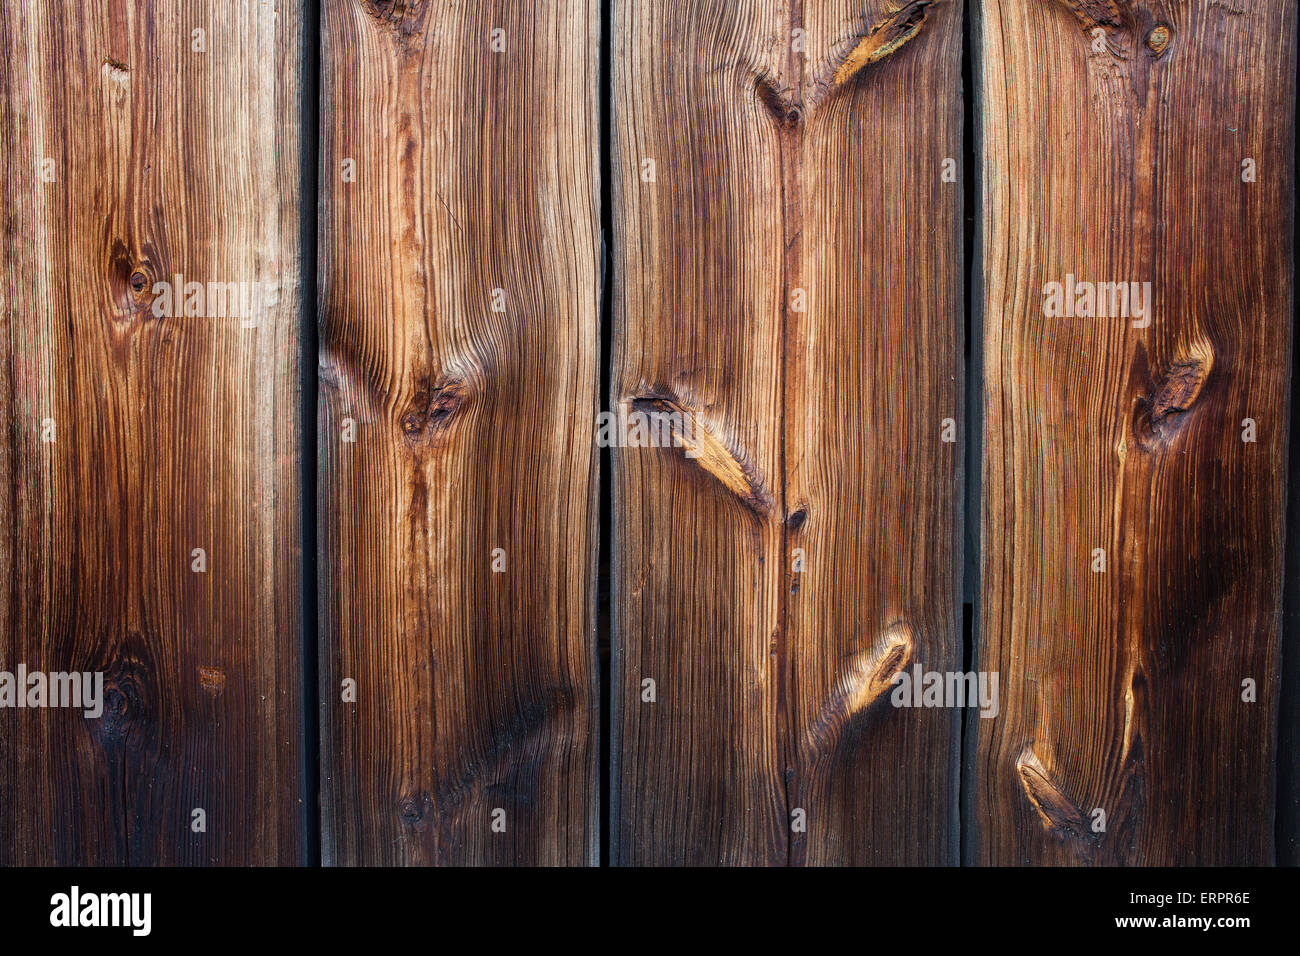 Vintage wood planks with knots texture or background decor element - Stock Image